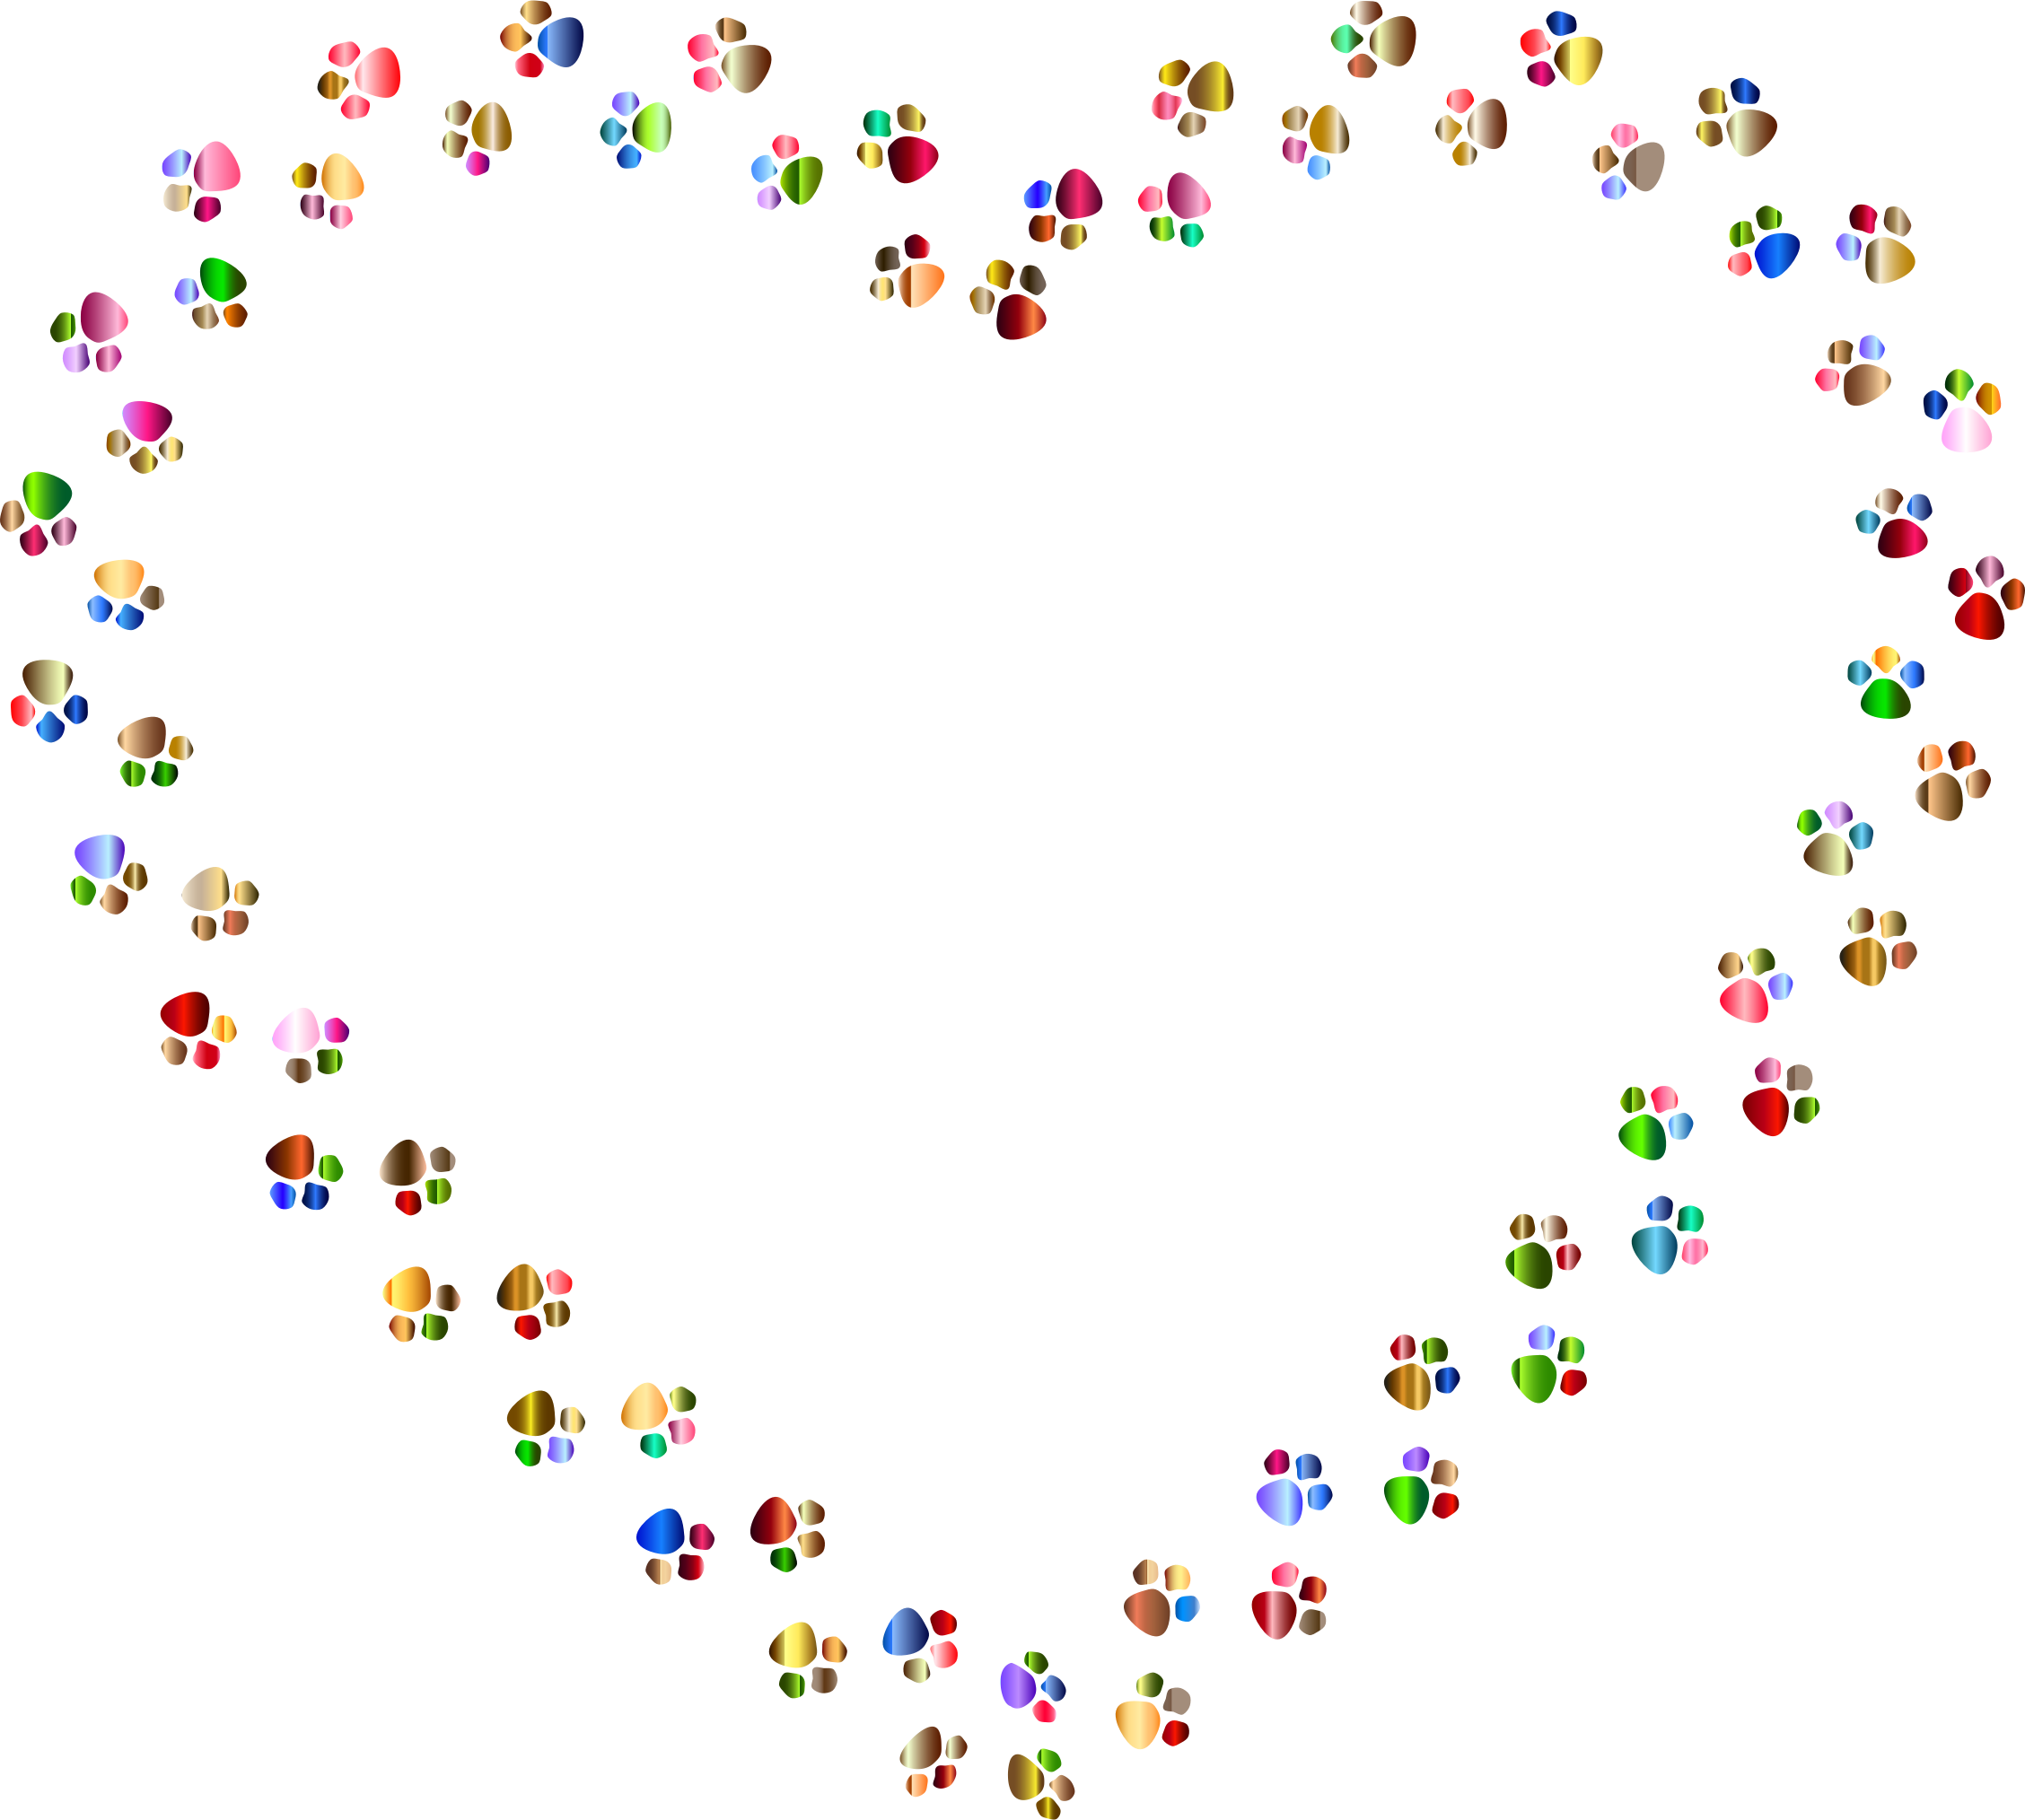 Paw prints png. Colorful heart mark ii